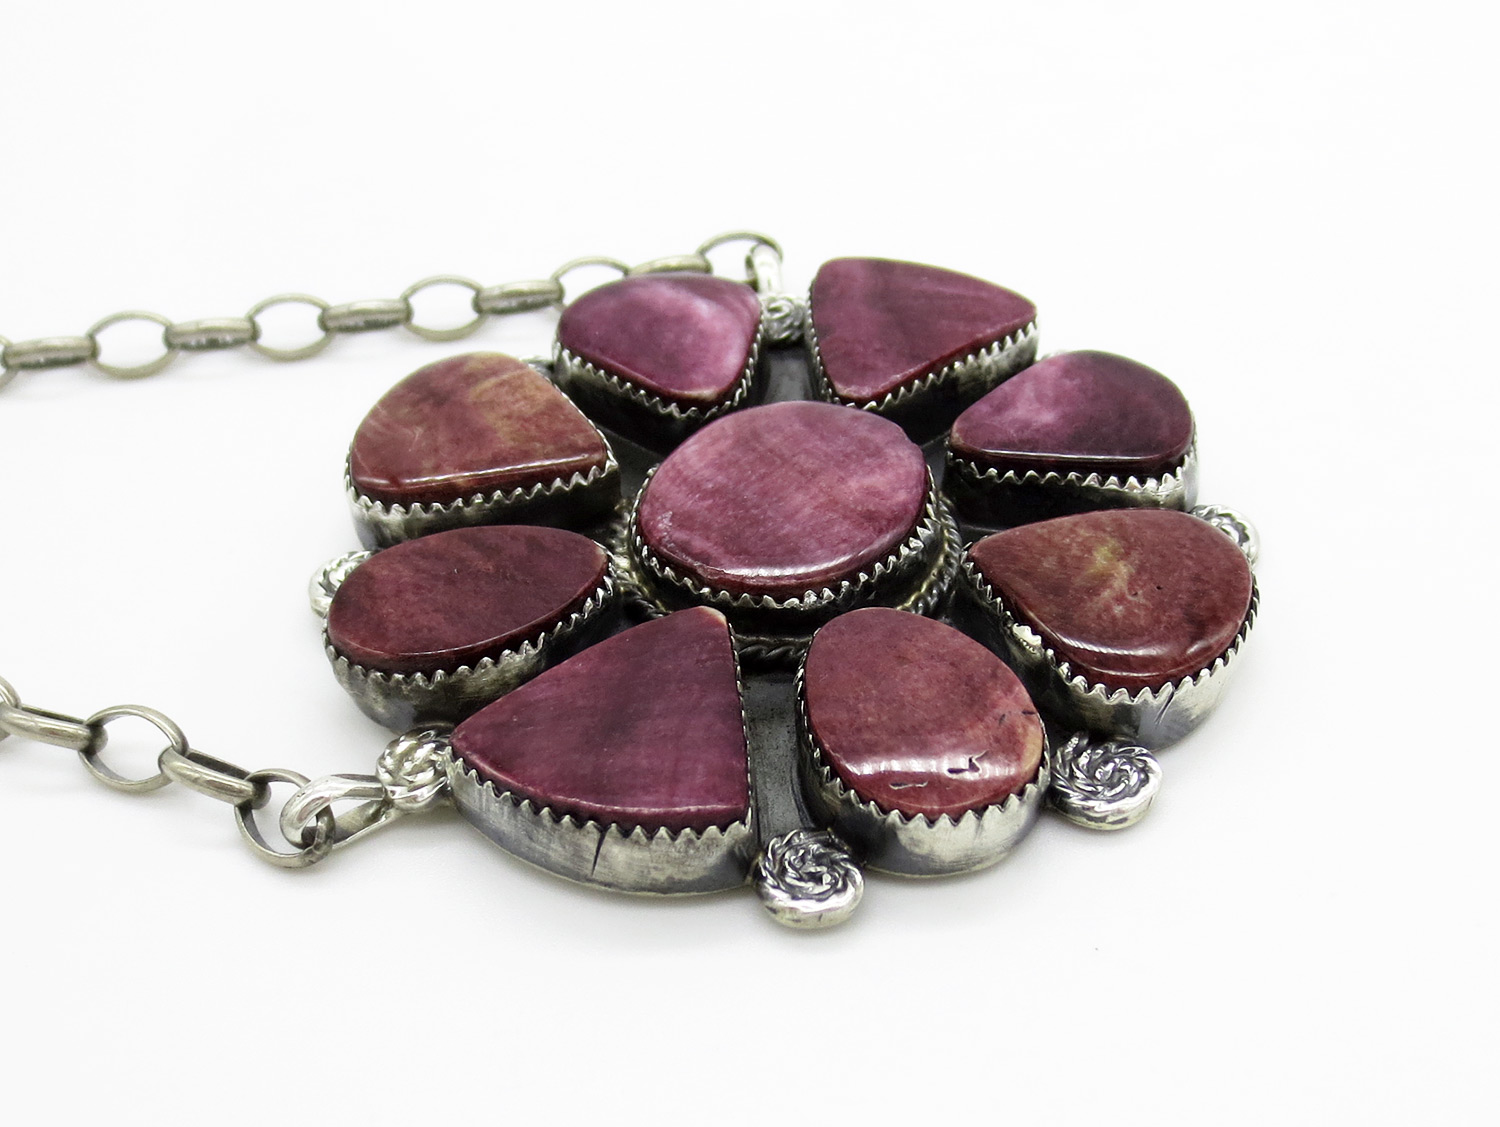 Image 2 of Big Purple Spiny Oyster & Sterling Silver Pendant Necklace - 3861dt